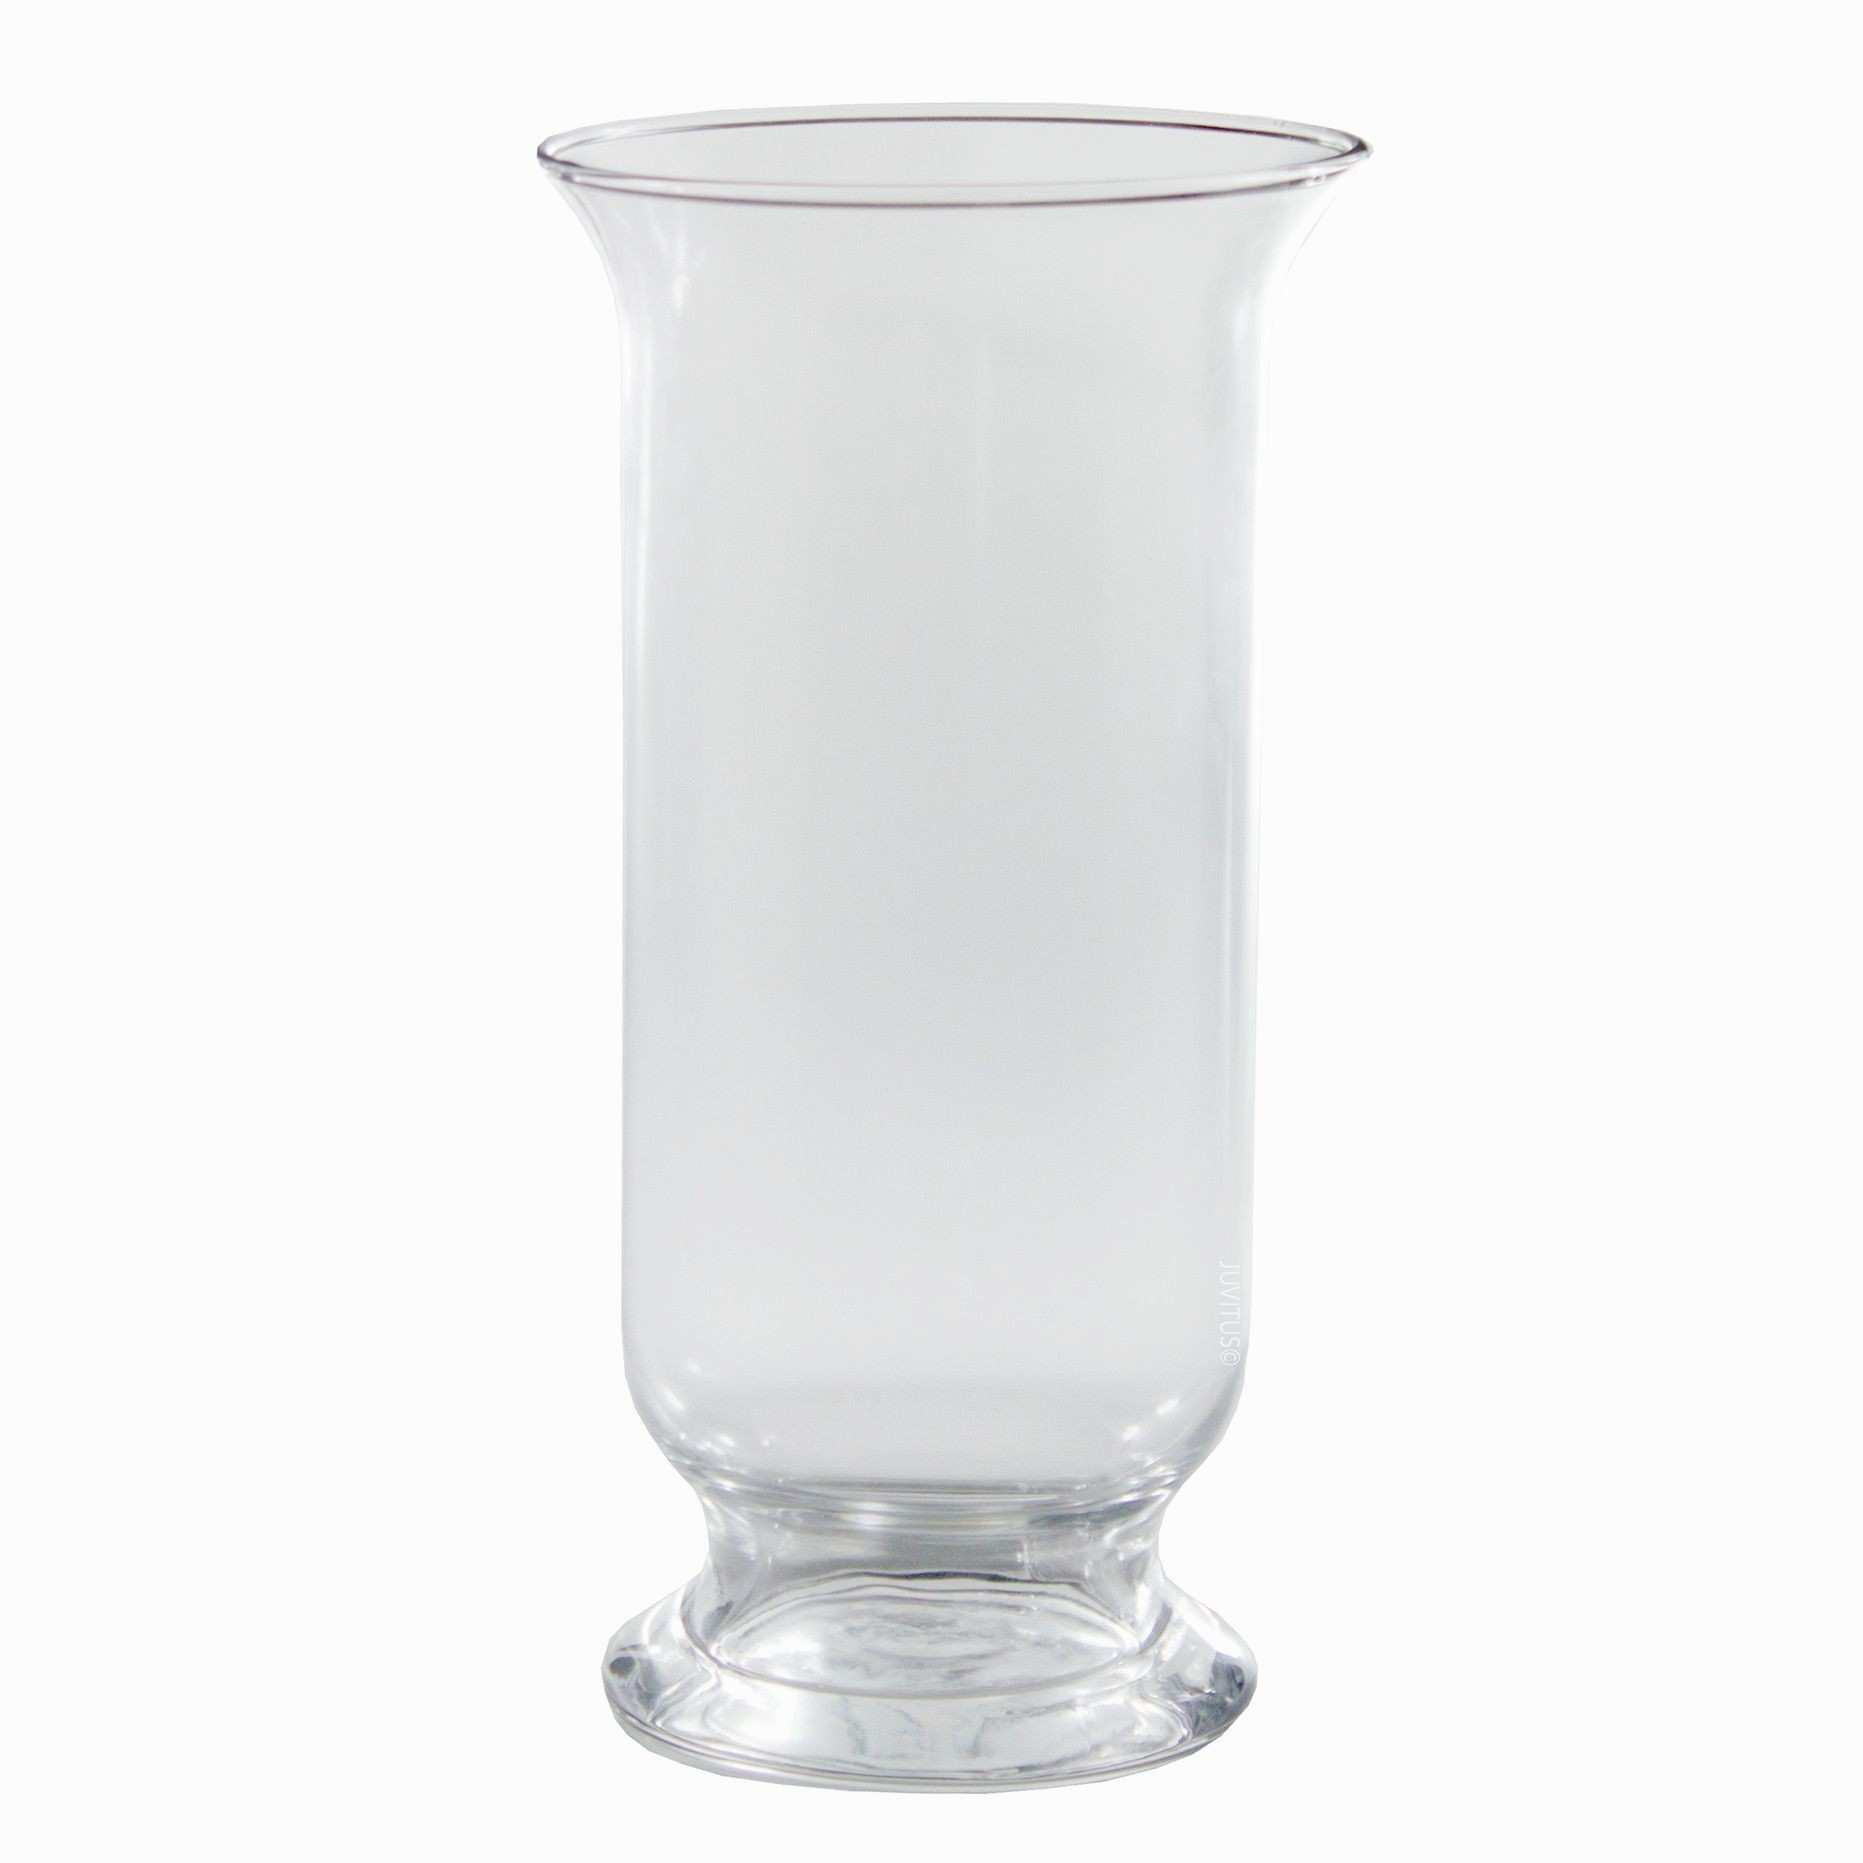 tall pilsner glass vases of 35 magnificent pedestal hurricane candle holders azcounselrealty com with pedestal hurricane candle holders unique 10 tall clear glass pedestal hurricane vase or candle holder